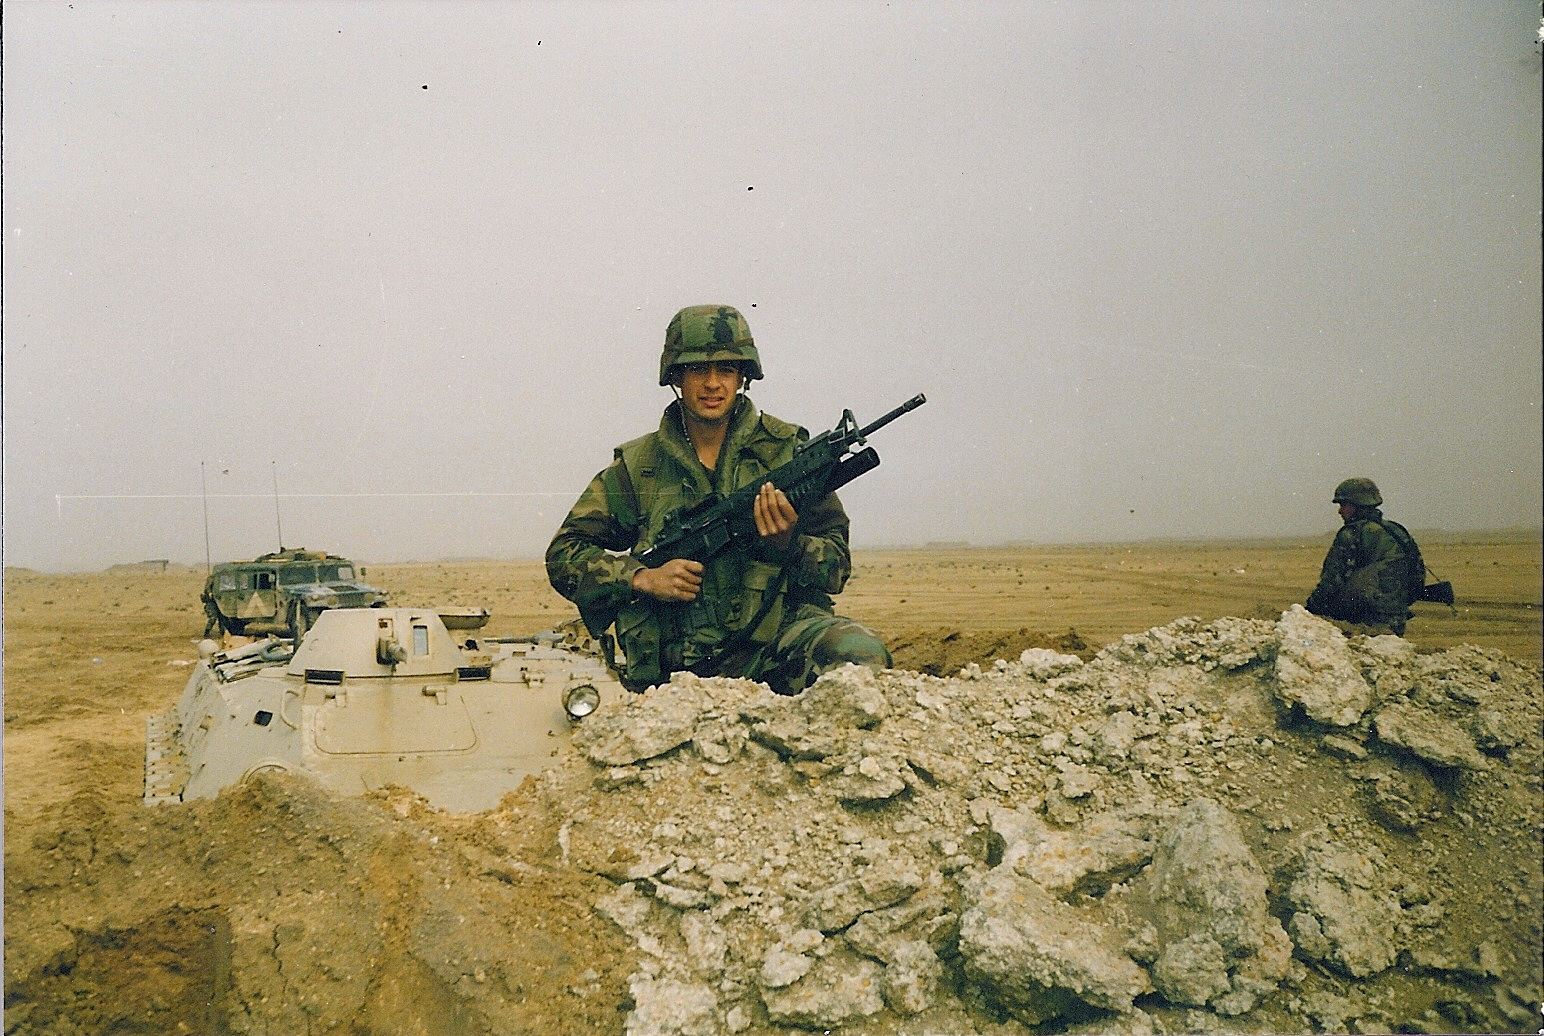 Wildlife inspector Damian Martelli serving in Desert Storm. Photo credit: USFWS